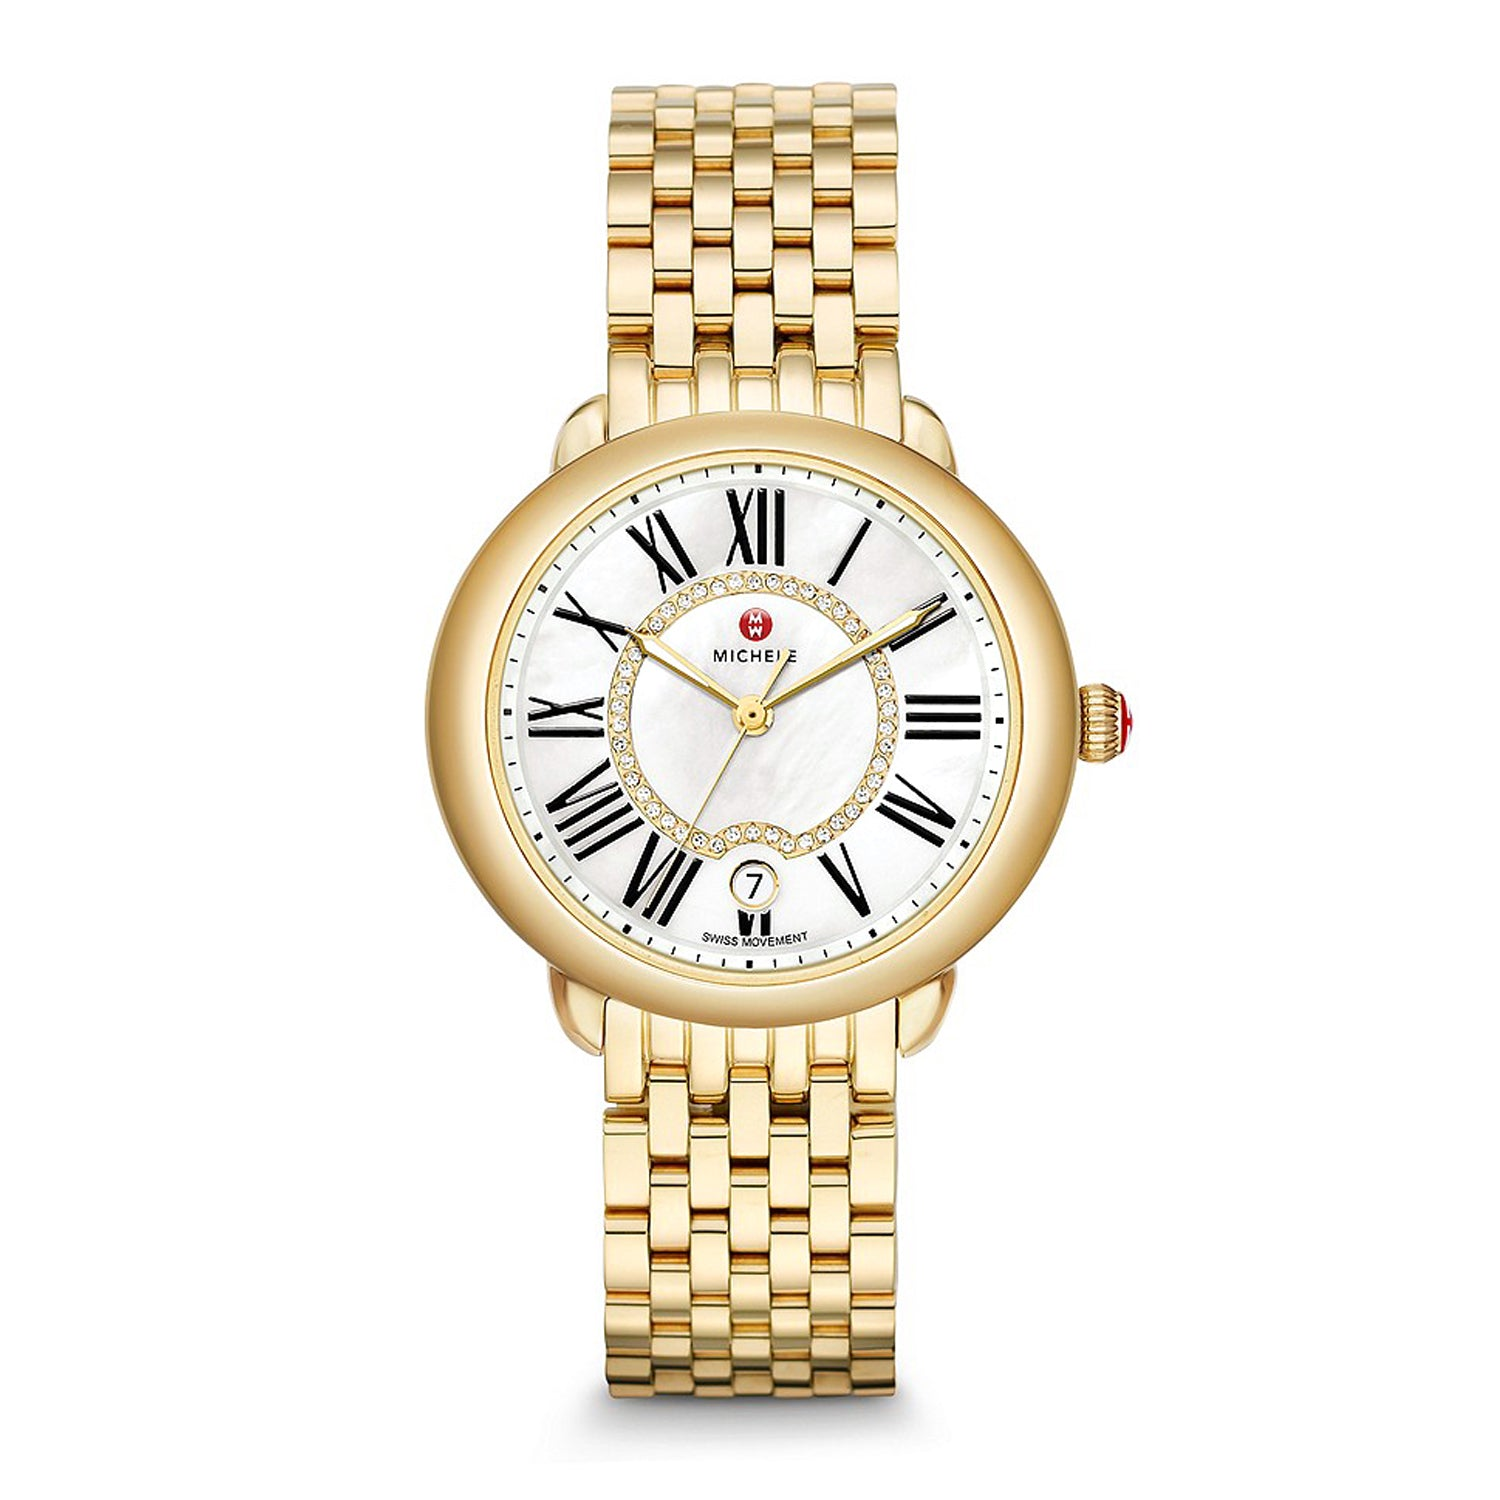 MICHELE Serein Mid 18K Gold Diamond Dial Watch